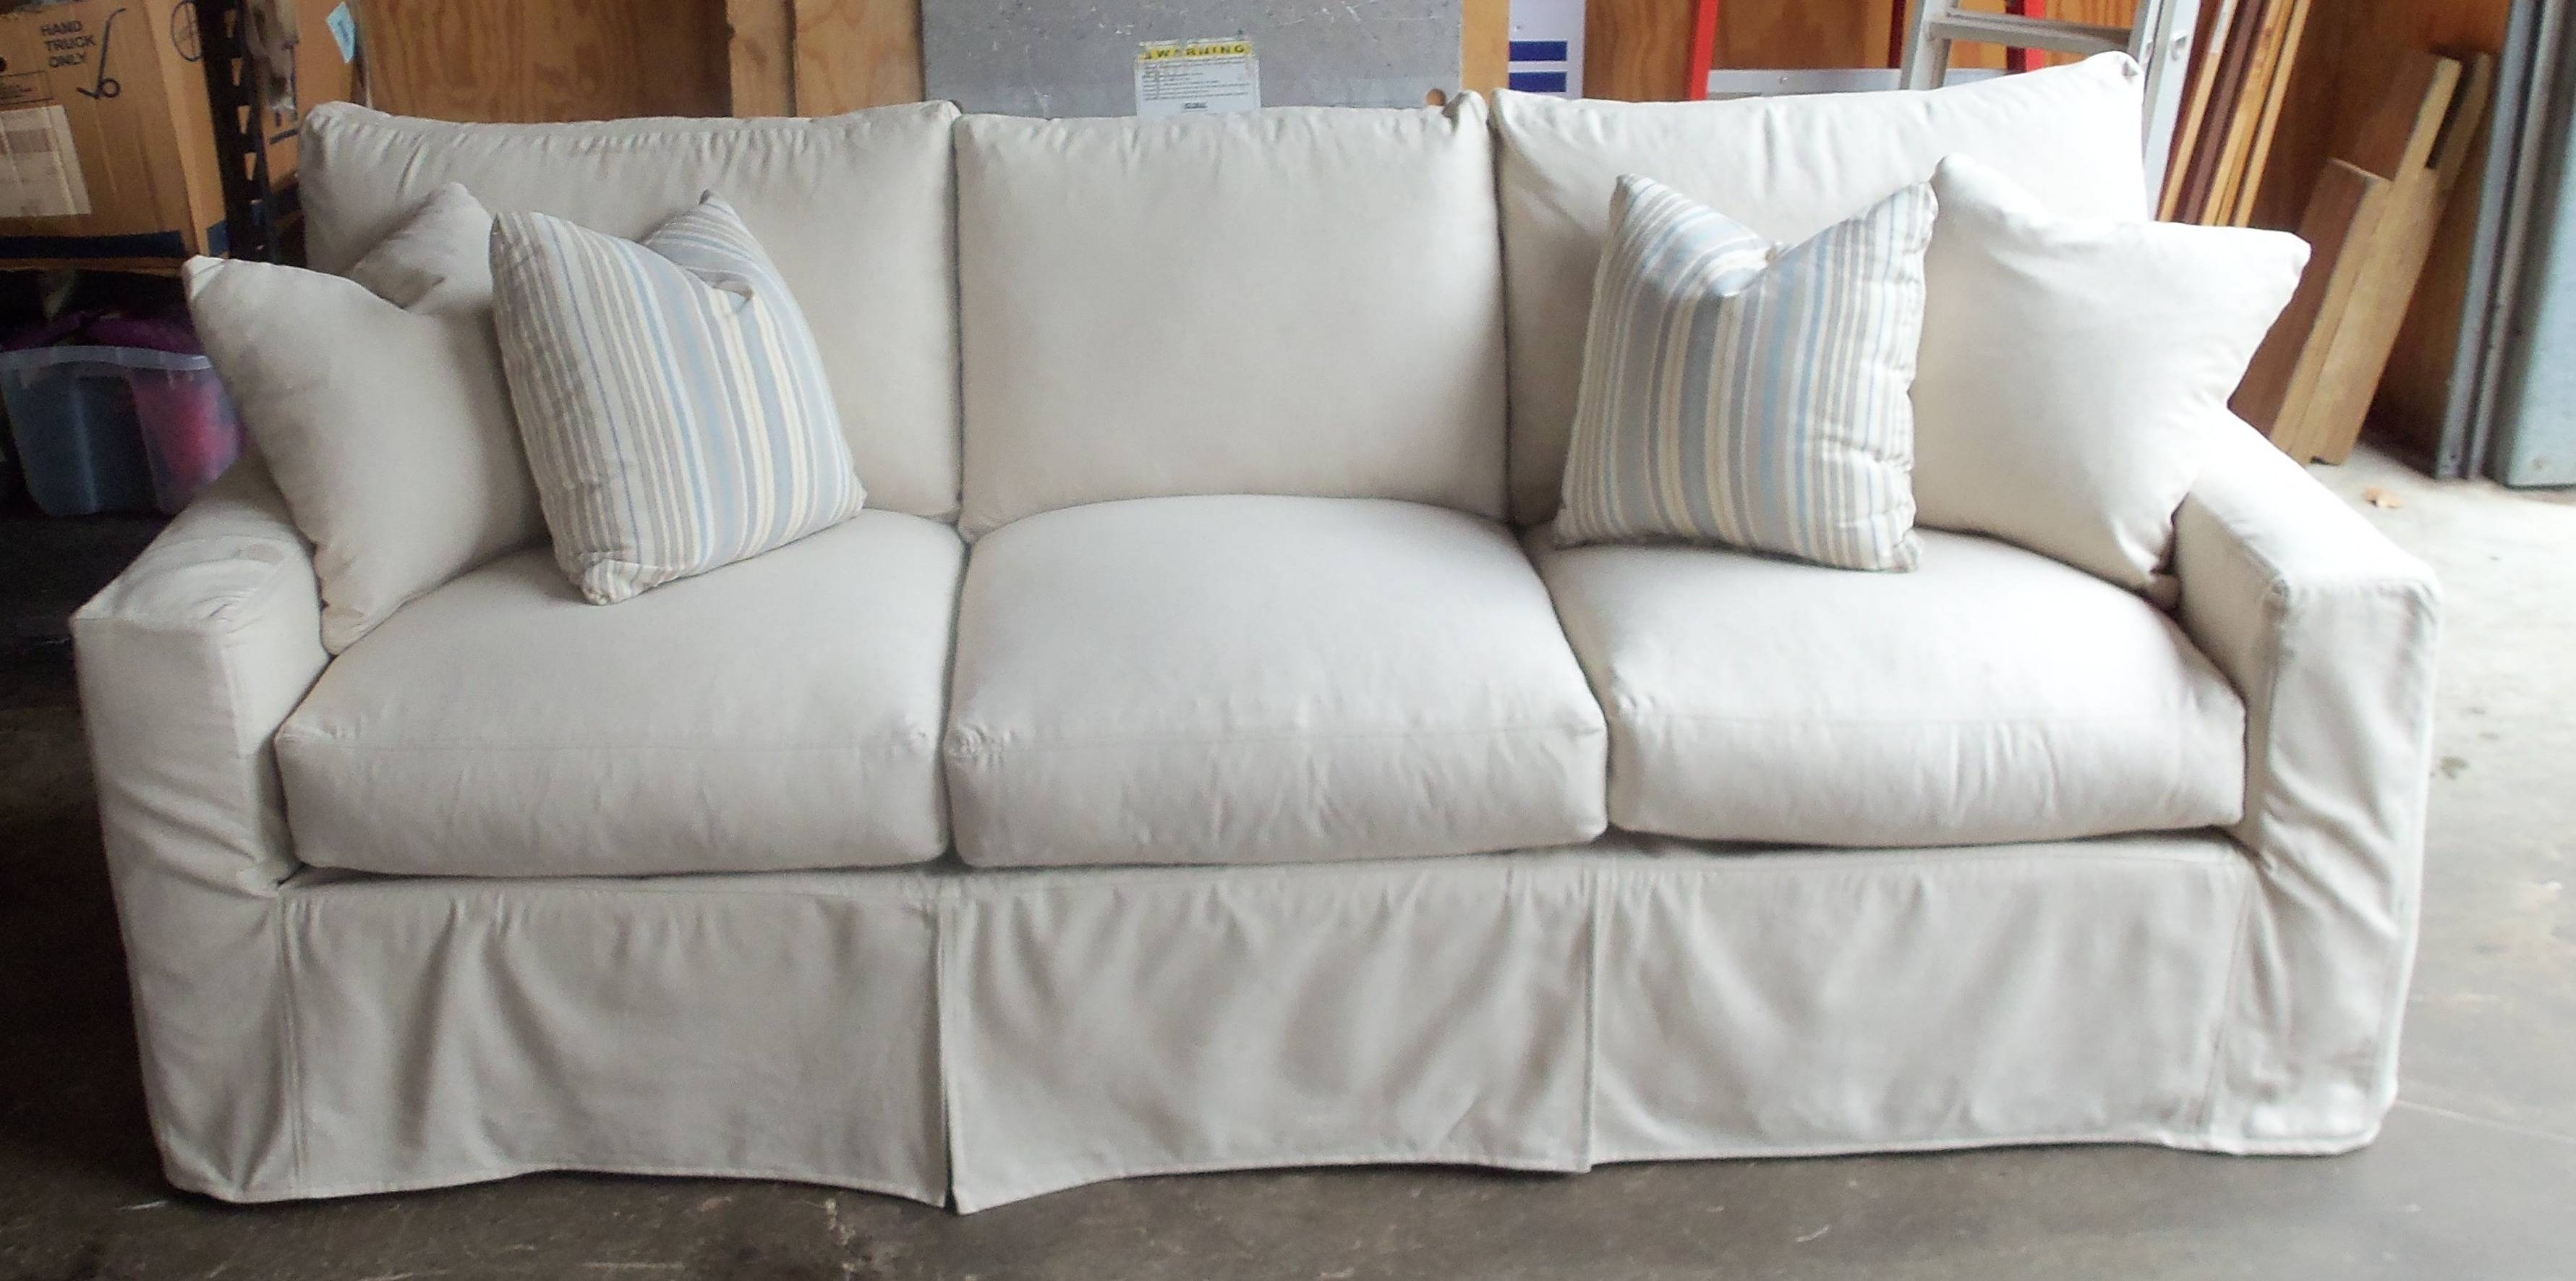 Sofas Center : White Slipcovers For Sofas With Cushions Cotton And in Canvas Sofas Covers (Image 14 of 15)